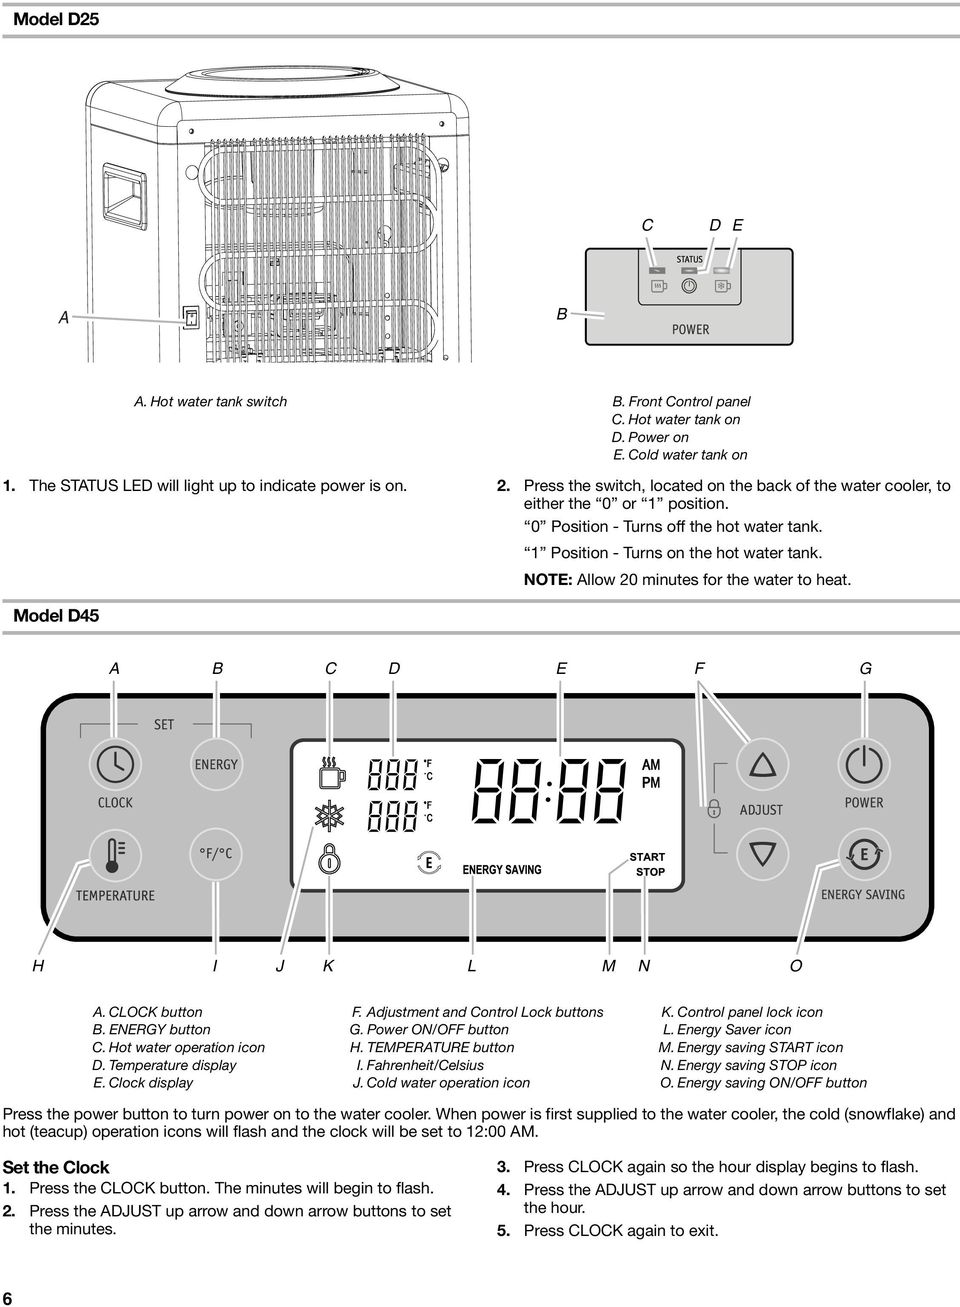 NOTE: llow 20 minutes for the water to heat. Model D45 D E F G H I J K L M N O. LOK button. ENERGY button. Hot water operation icon D. Temperature display E. lock display F.